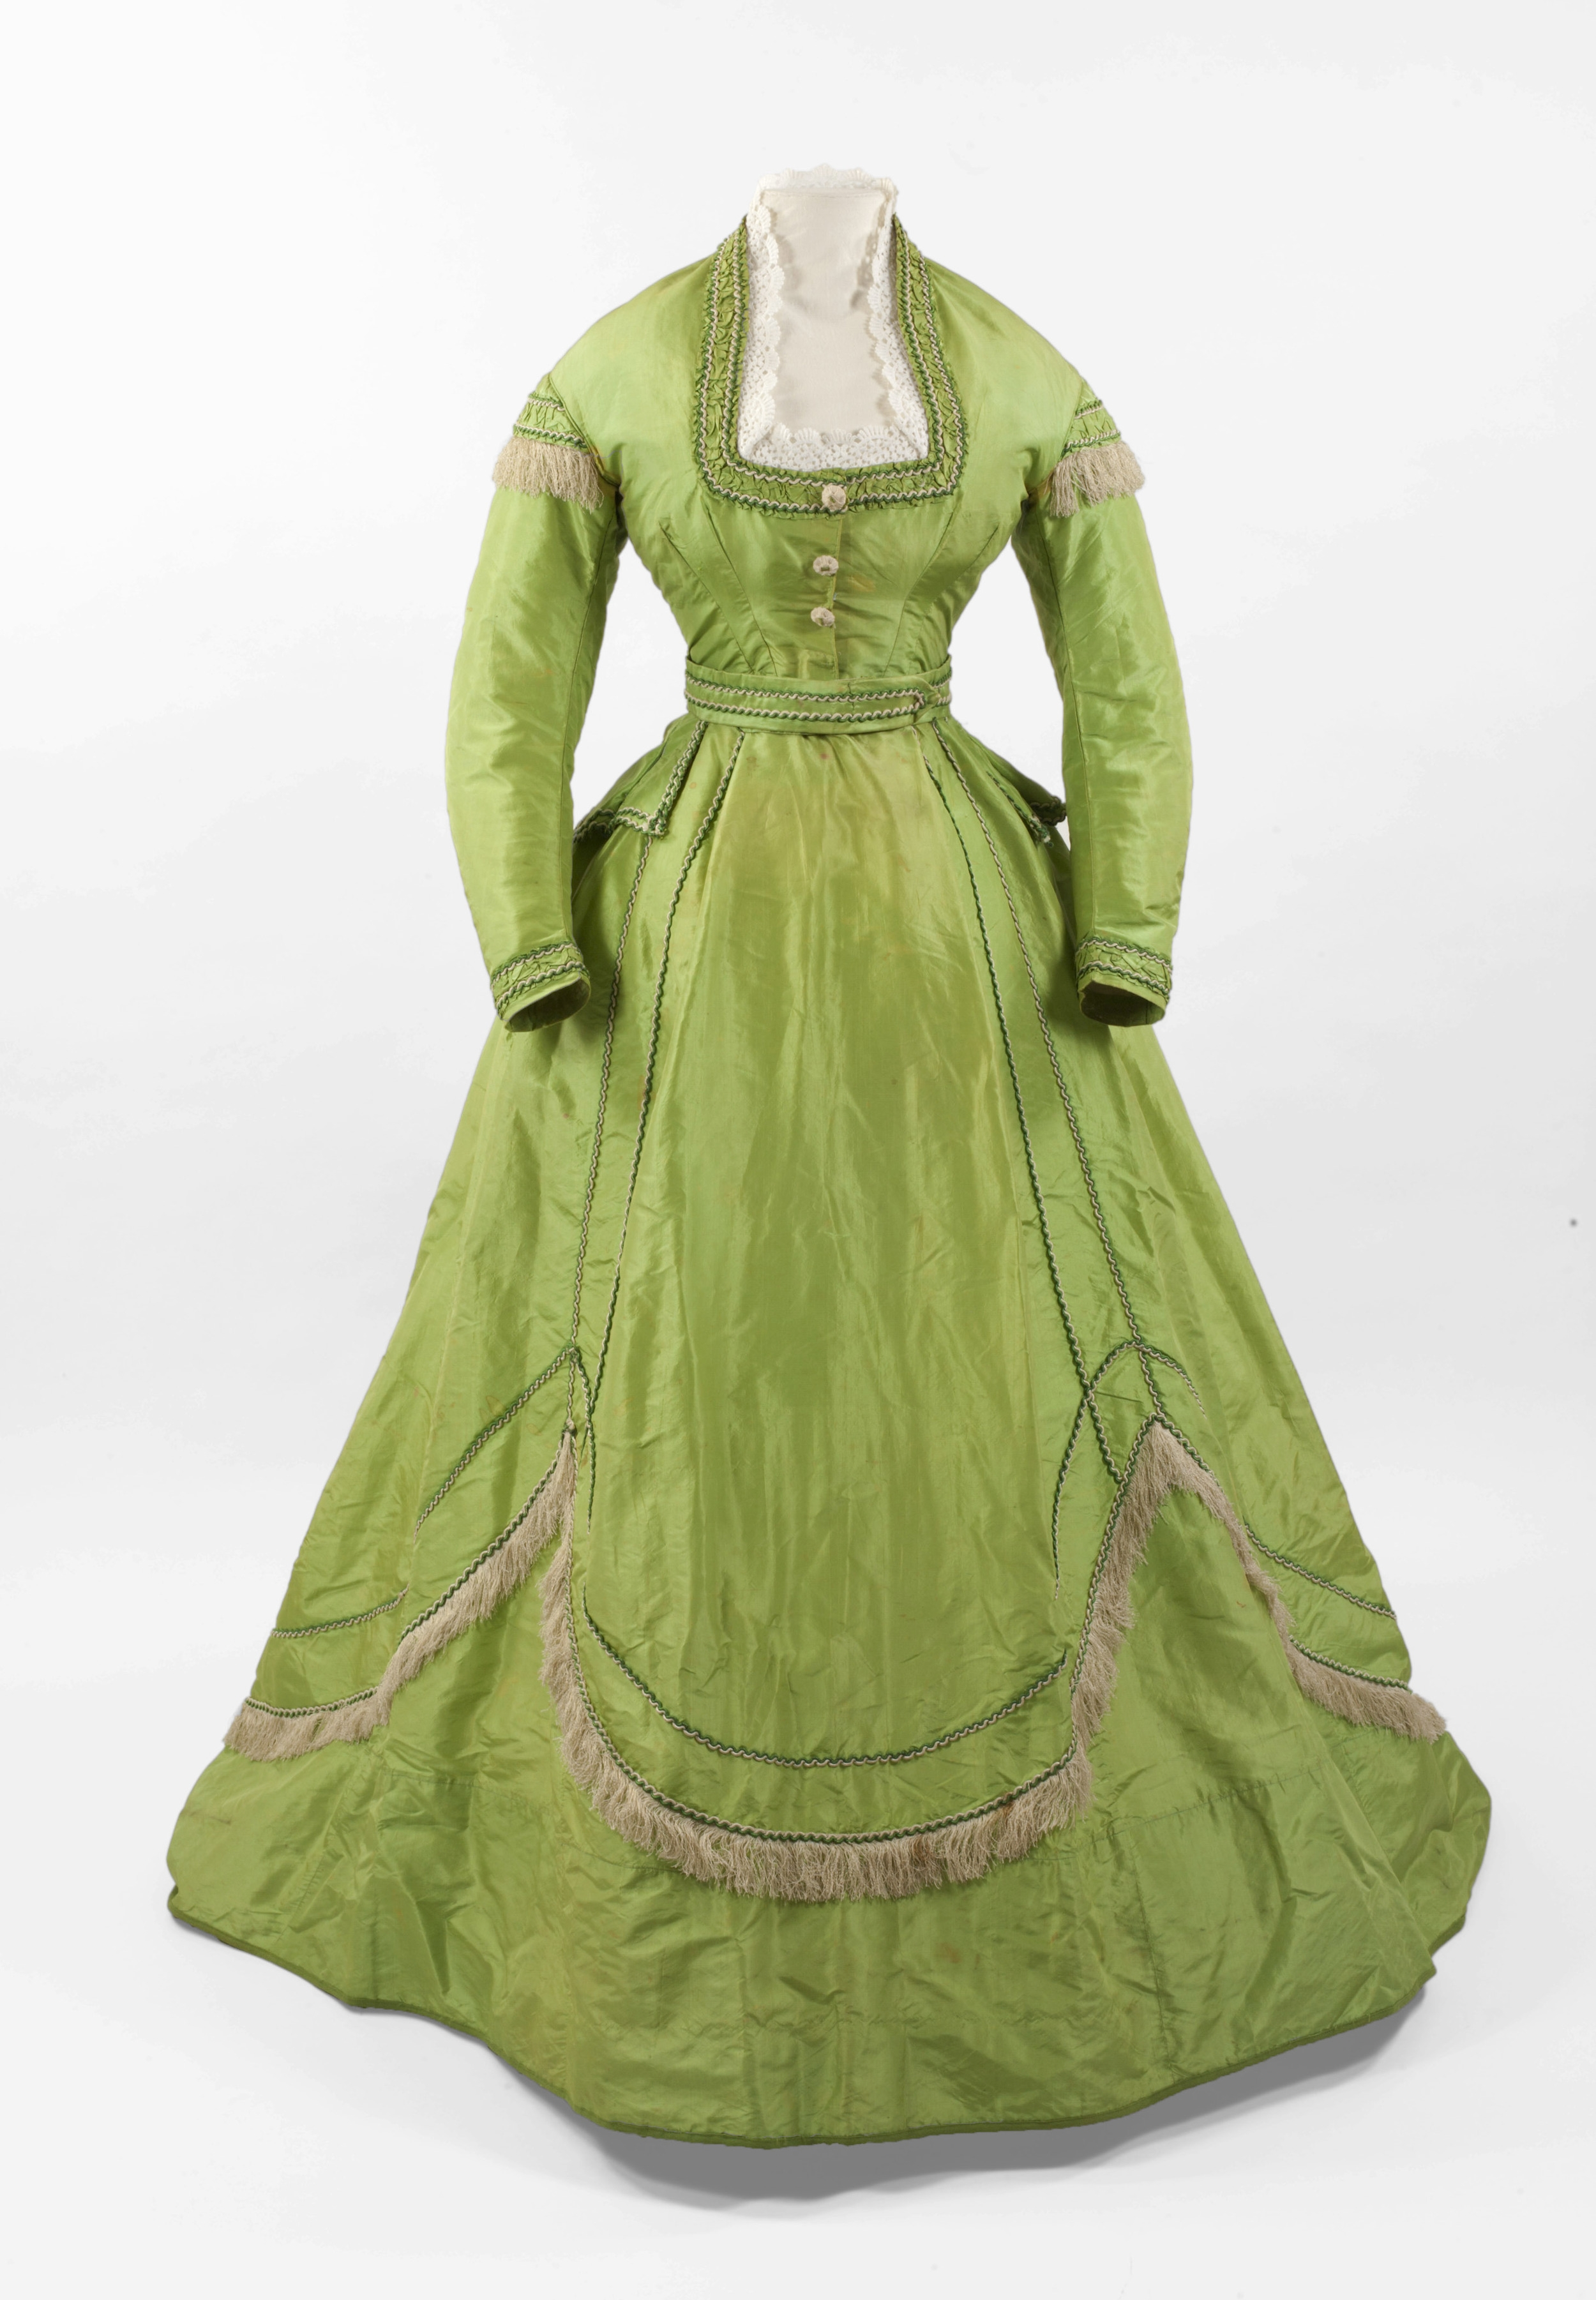 English or French, c. 1860s The Fashion Research Collection at Ryerson University. Gift from the Cleaver-Suddon Collection.Image © 2015 Bata Shoe Museum, Toronto, Canada